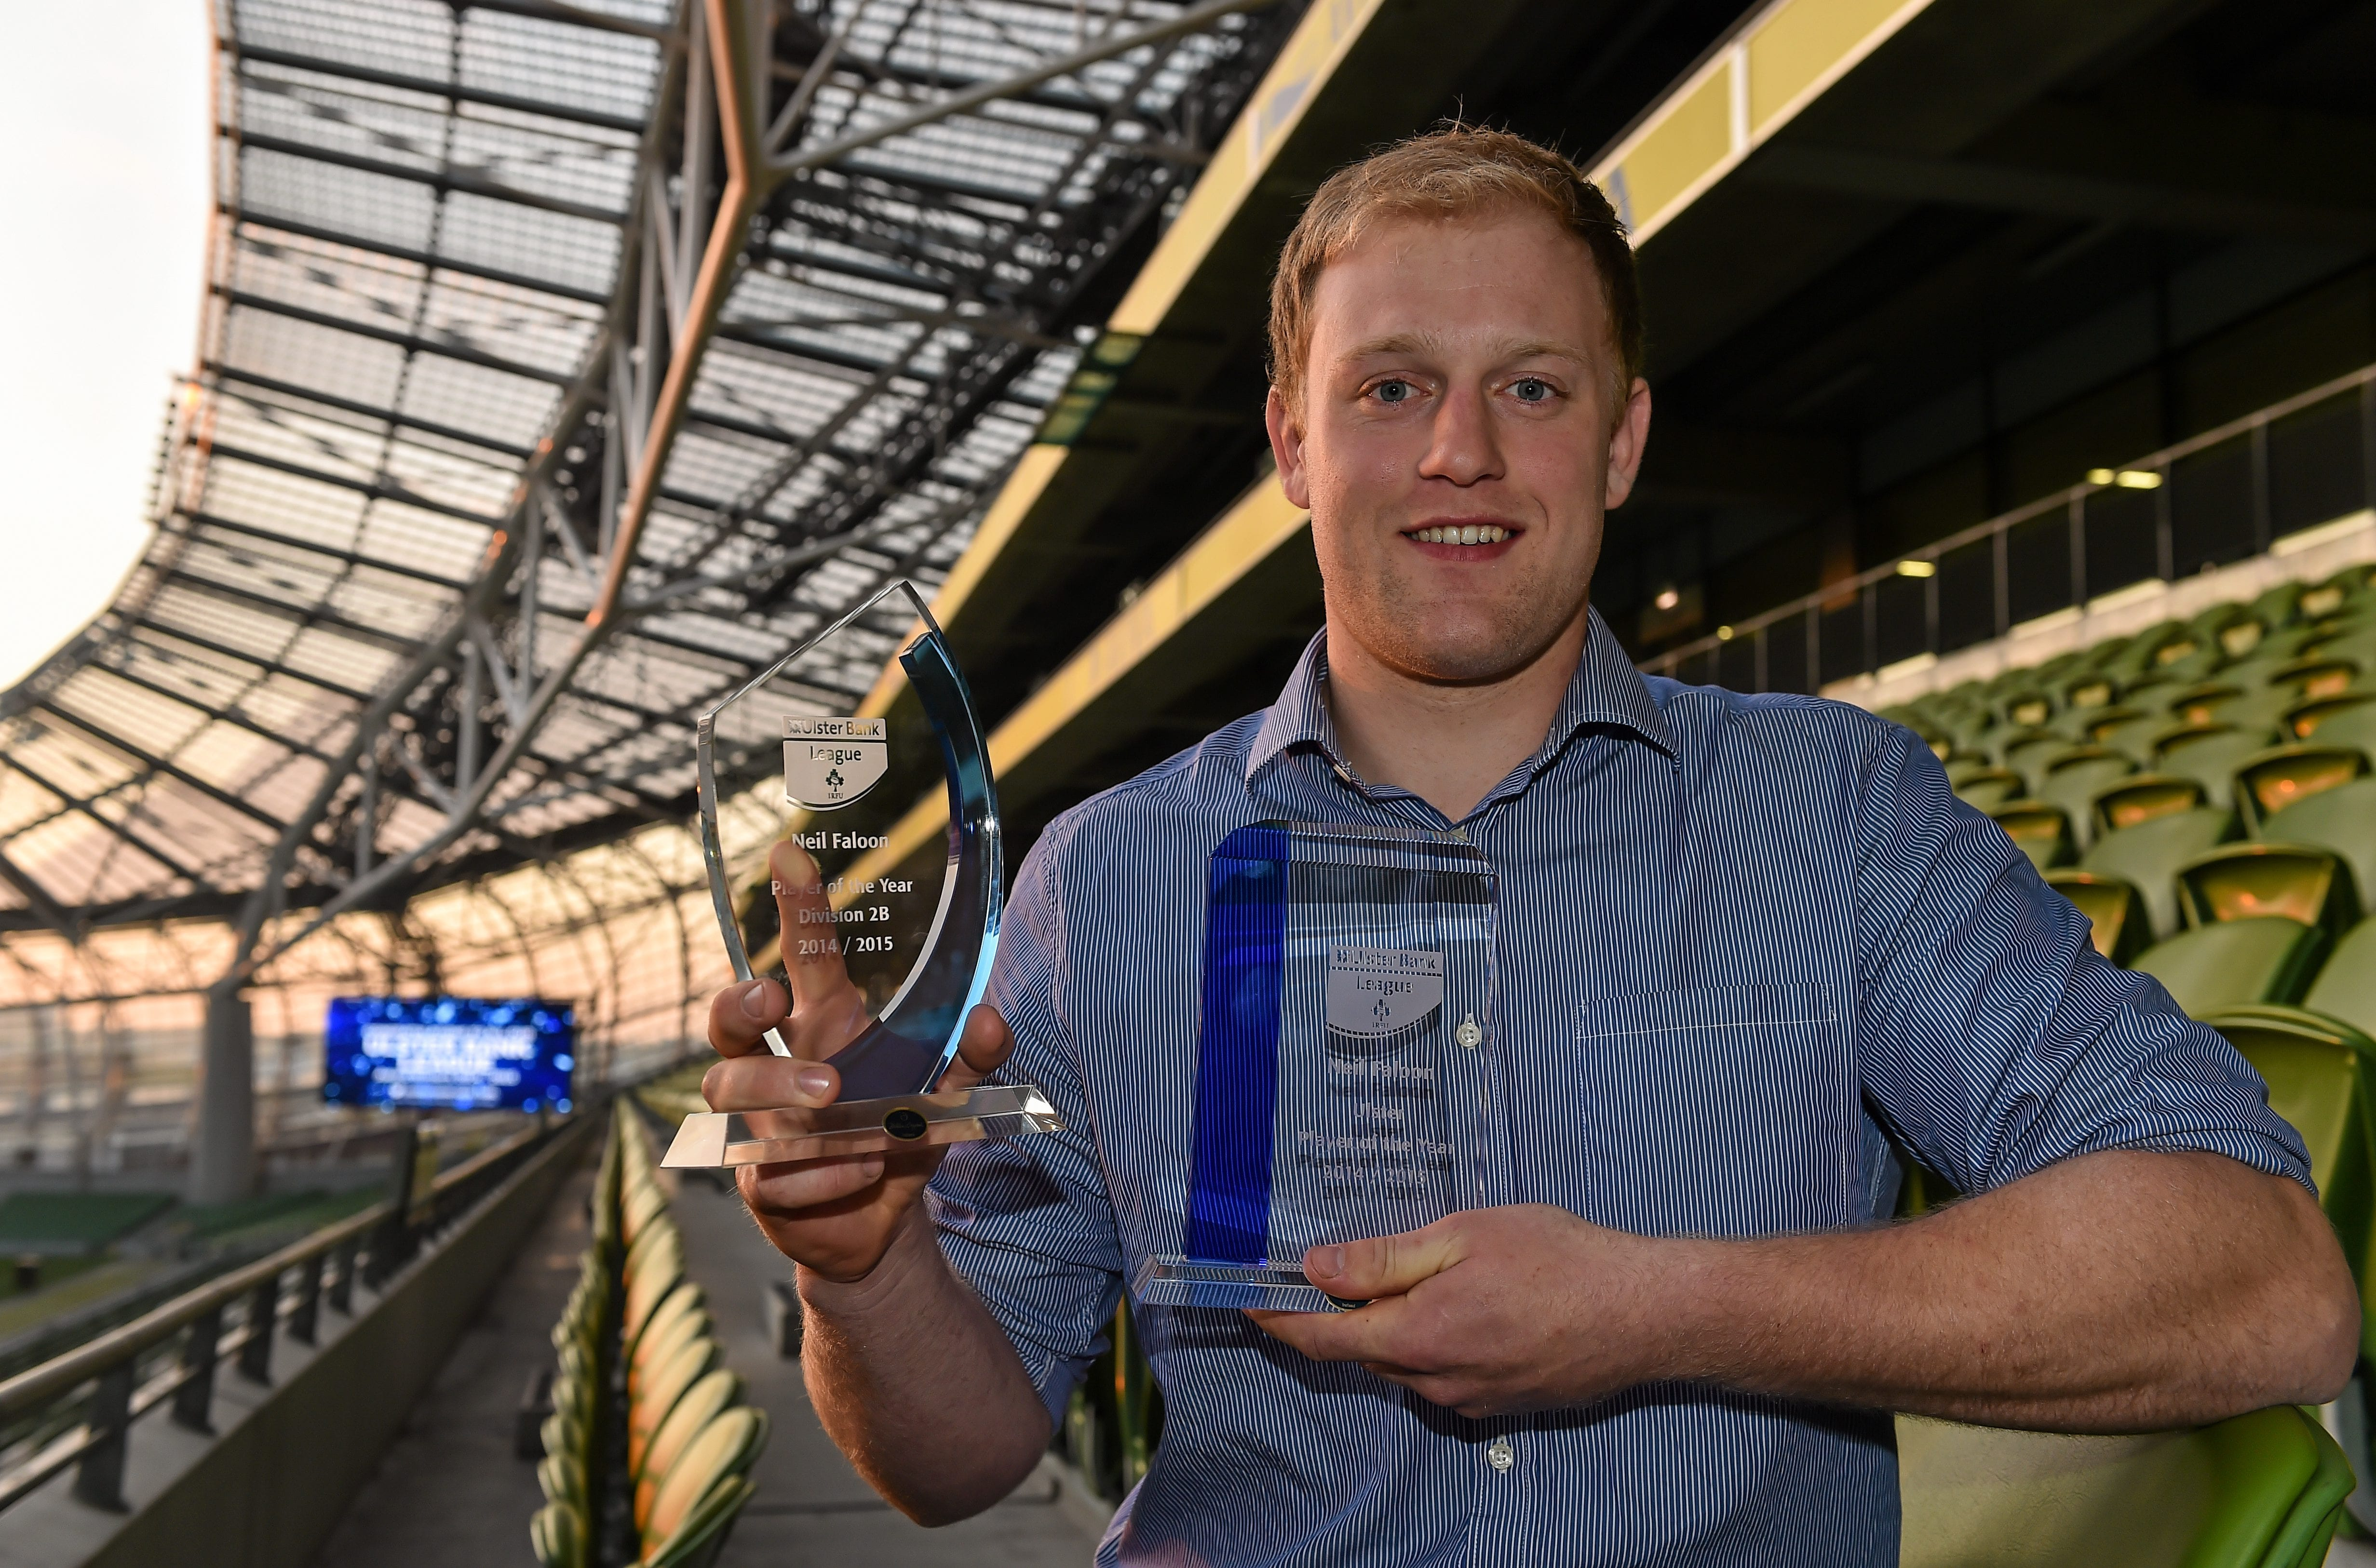 14 May 2015; City of Armagh player Neil Faloon collected two awards at this year's Ulster Bank League Awards held at the Aviva Stadium, Dublin last night (Thursday 14 May). Ireland's Head Coach Joe Schmidt presented Neil with the Ulster Bank Ulster Player of the Year Division 2B award and the Ulster Bank Ulster Player of the Year trophy. Local Ulster club players who featured on the awards shortlist included Ballynahinch's Ross Adair who was shortlisted in both the Rising Star and Ulster Provincial Player of the Year categories, Sean Taylor from Ballymena, named in 1B Division Player of the Year category and in the Ulster Provincial Player of the Year category along with Belfast Harlequin's Frank Taggart. Queen's University PROs Ryan Clarke and Keelan Durnien were also shortlisted in the Ulster Bank PRO of the Year. For more information on the Ulster Bank League Awards, go to www.facebook.com/ulsterbankrugby or find Ulster Bank Rugby on Twitter. Aviva Stadium, Lansdowne Road, Dublin. Picture credit: Brendan Moran / SPORTSFILE *** NO REPRODUCTION FEE ***